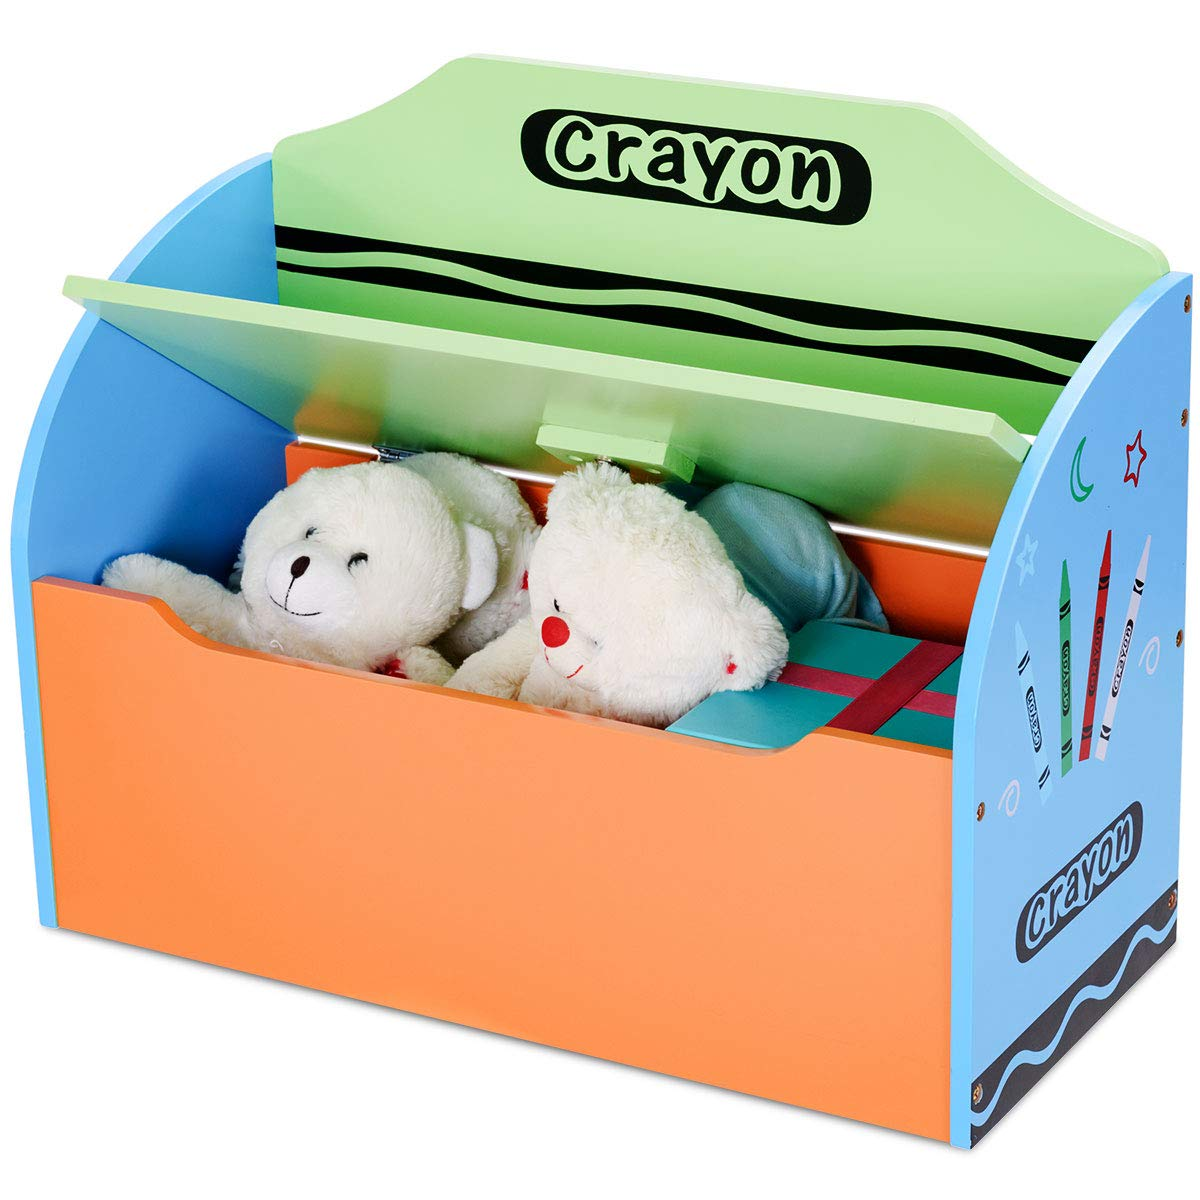 Costzon Toy Box, Wooden Toy Storage Chest Organizer, Entryway Storage Bench for Kids/ with Lid,Crayon Themed